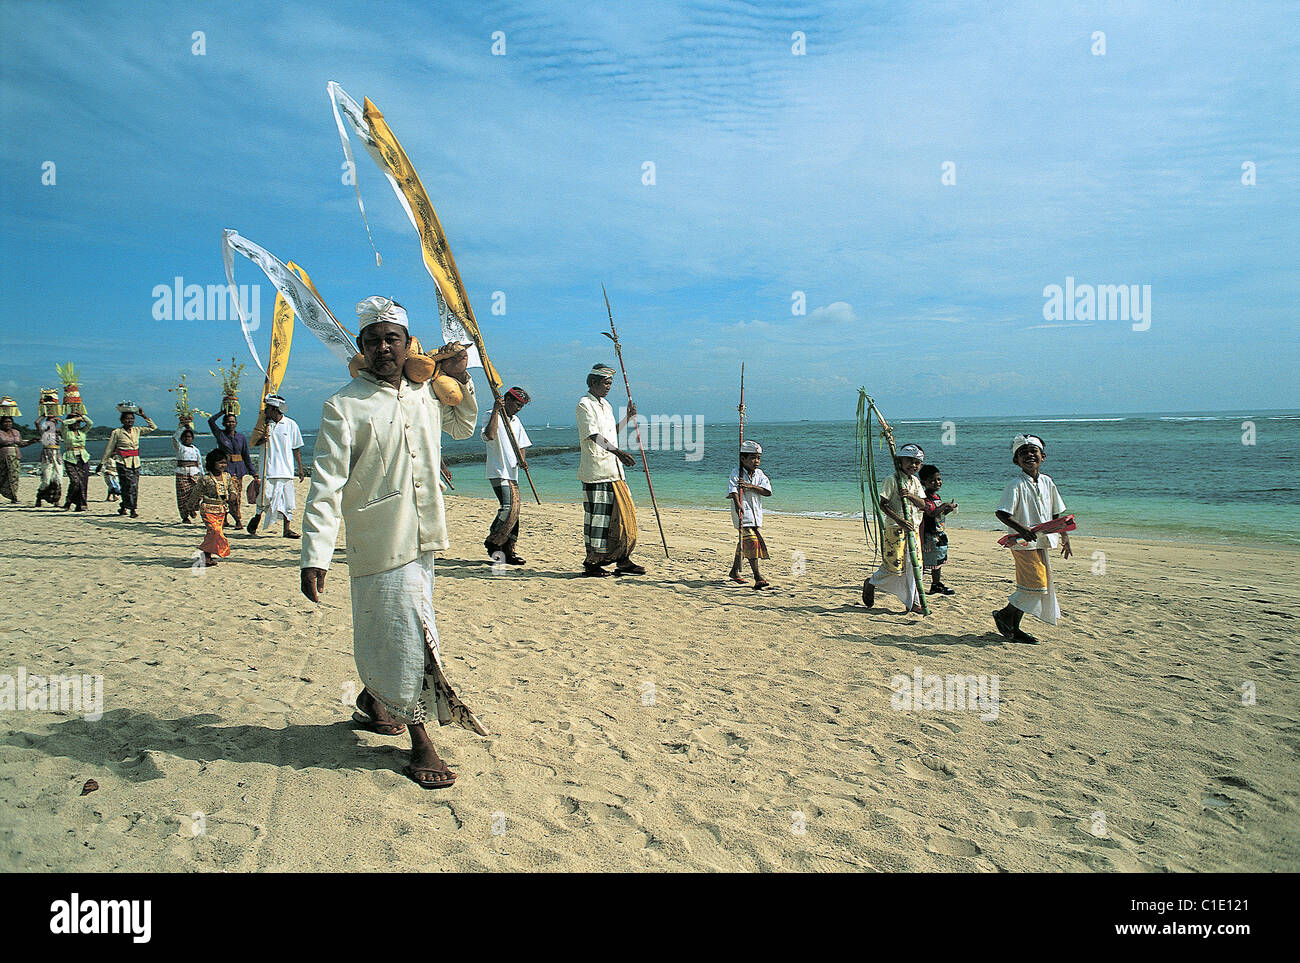 Indonesia, Bali, Purification ceremony at Nusa Dua Beach - Stock Image